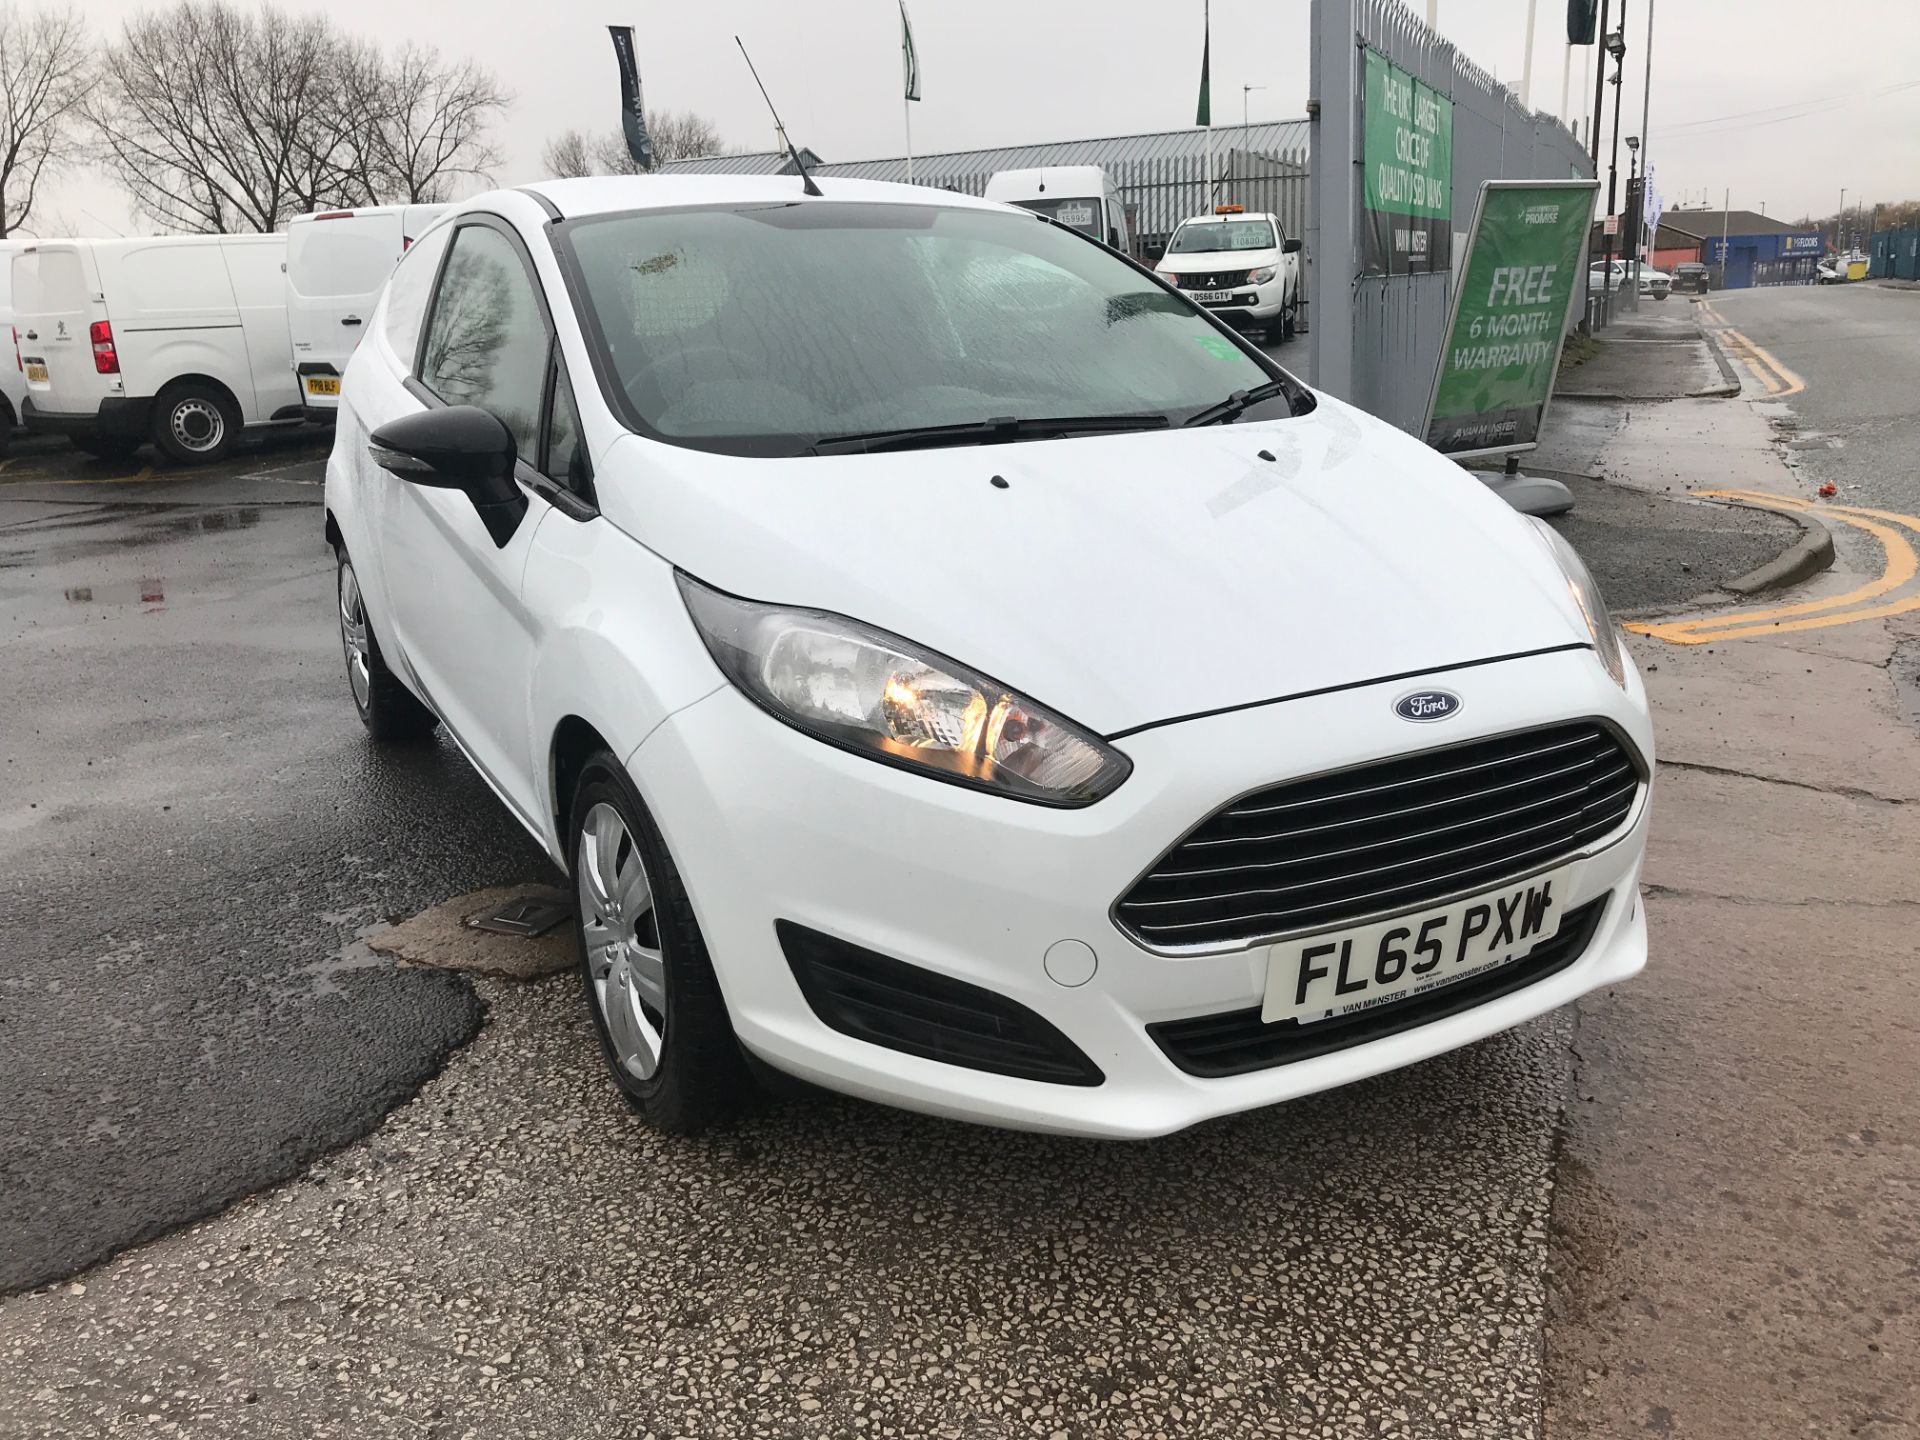 2015 Ford Fiesta 1.5TDCI 75PS EURO 5, AIR CON (FL65PXW)